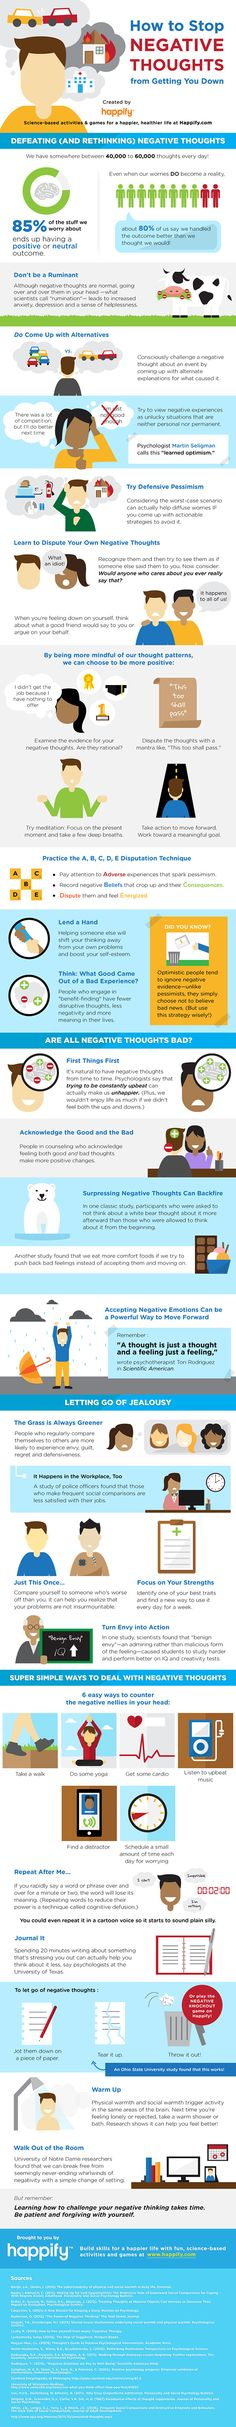 How To Stop Negative Thoughts from getting you down #Infographic #happify